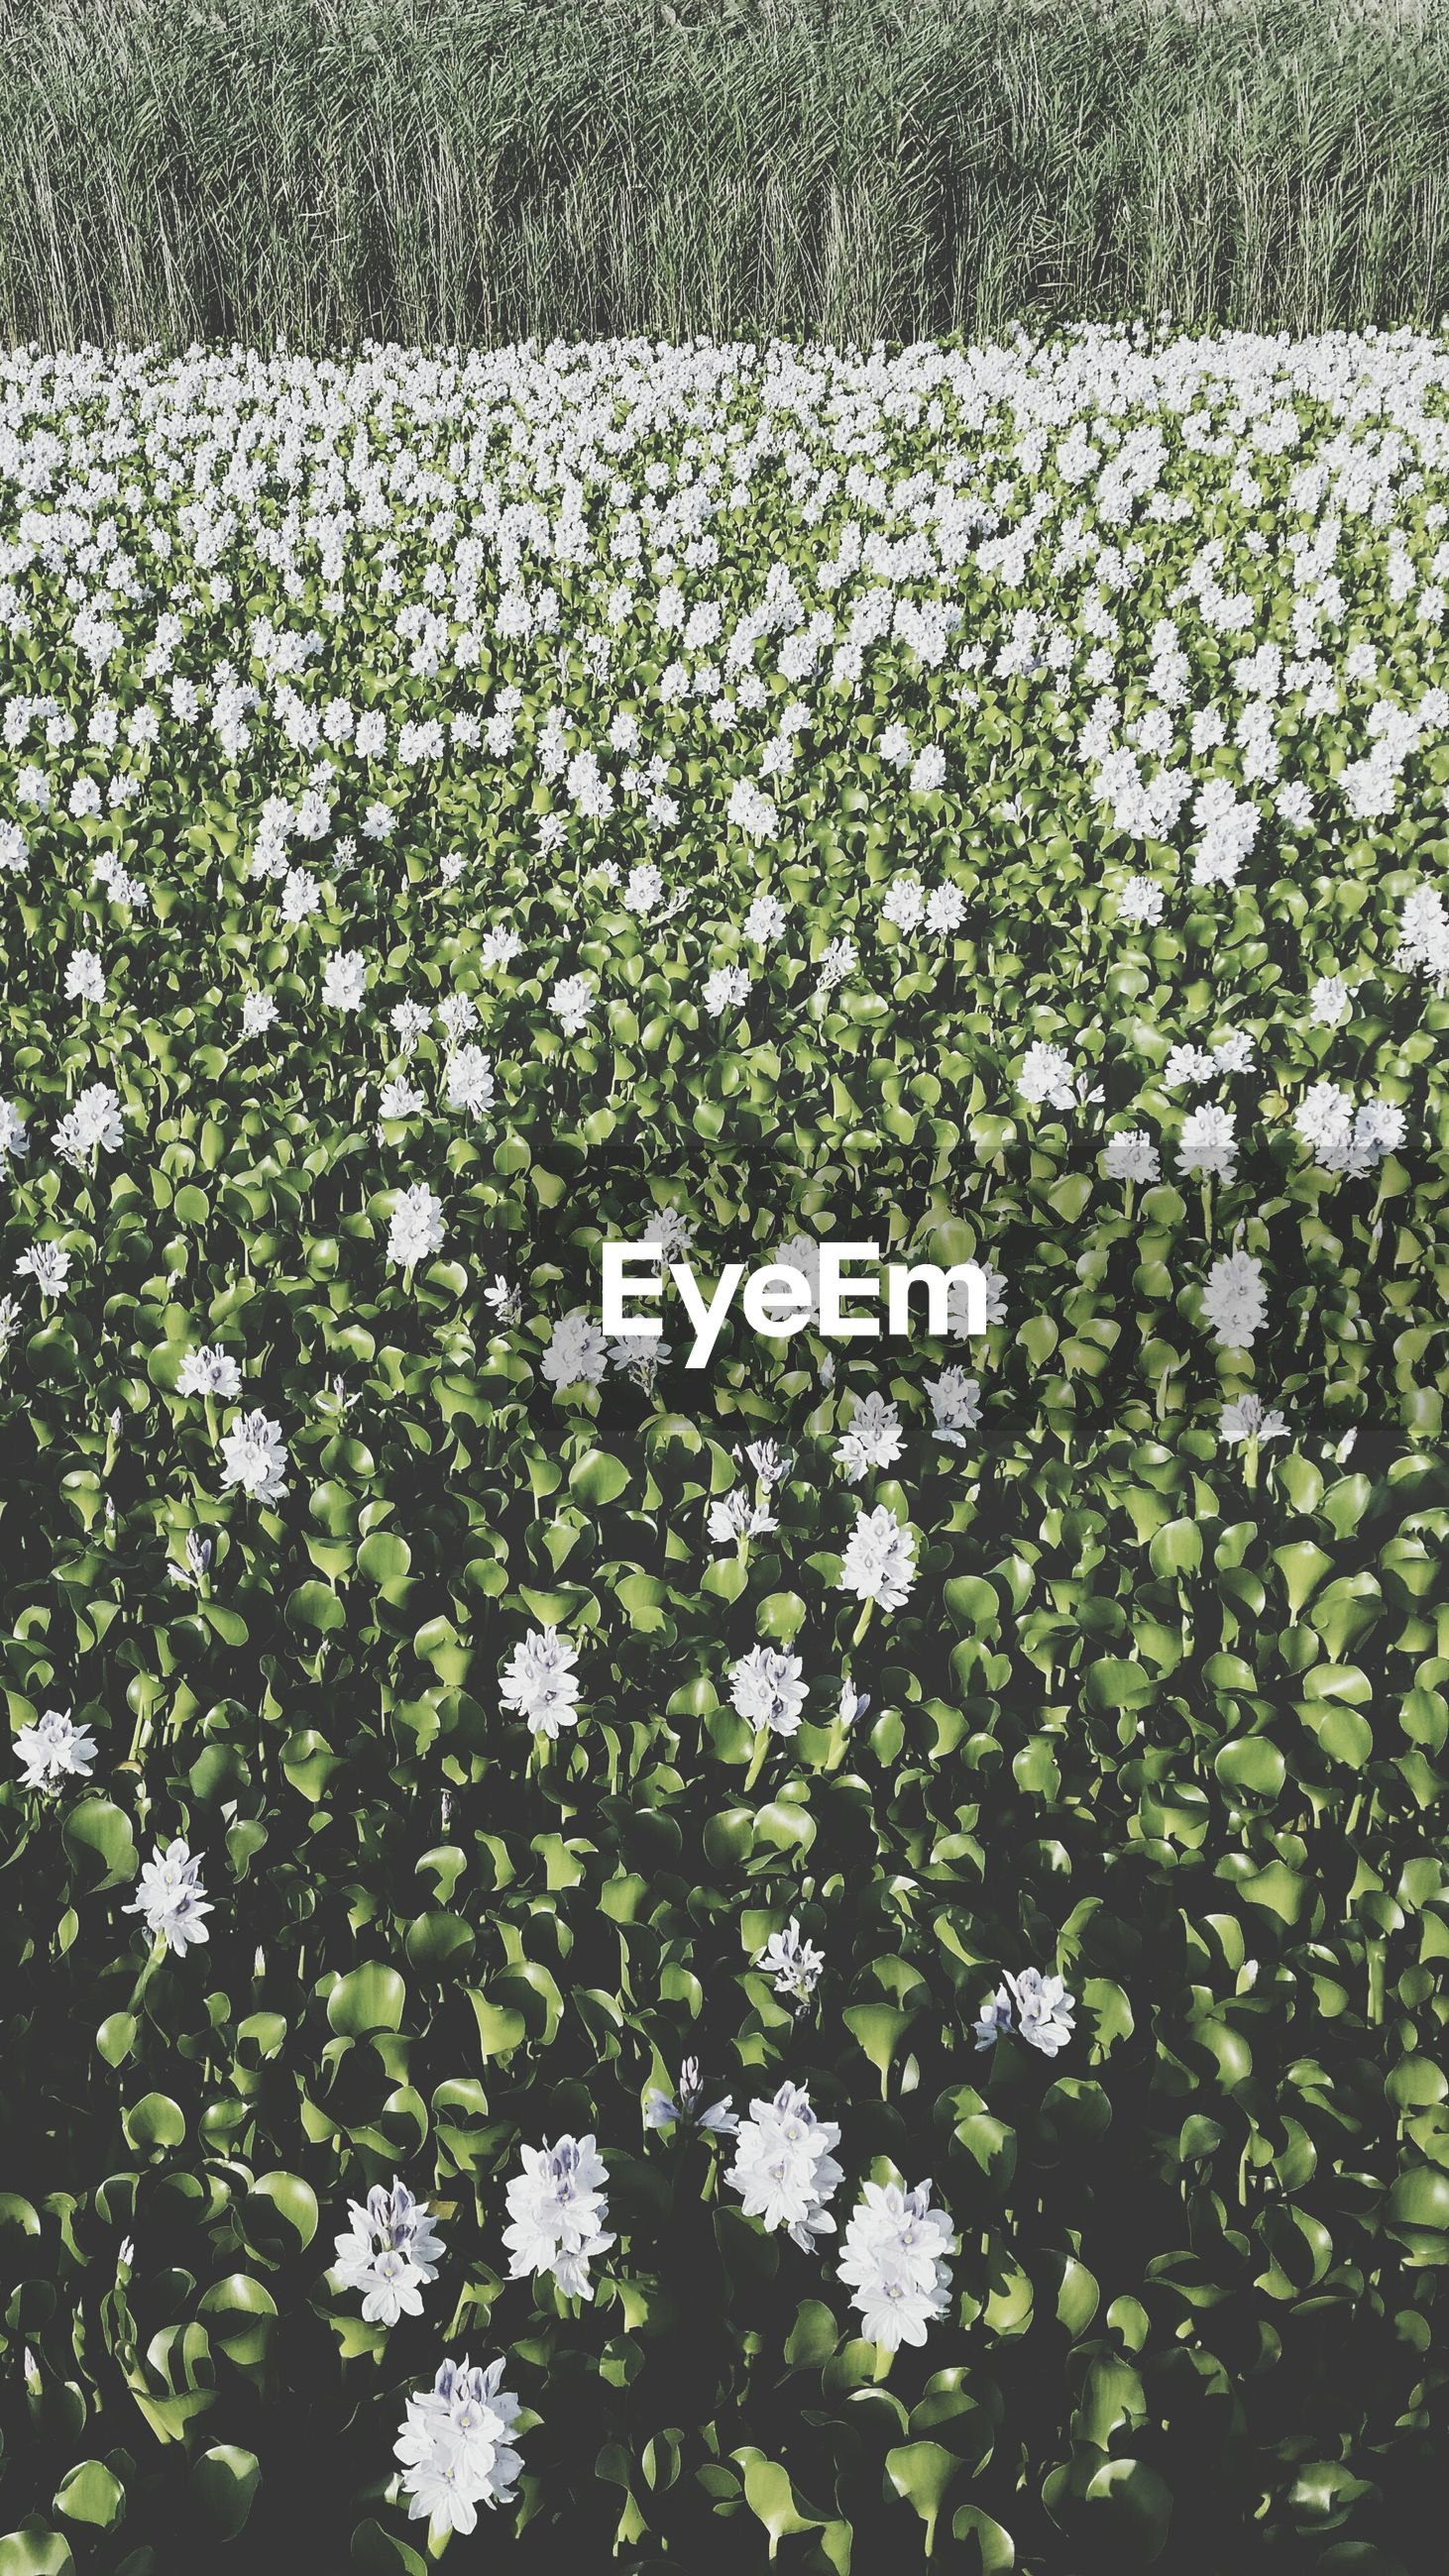 HIGH ANGLE VIEW OF WHITE FLOWERING PLANTS IN FIELD